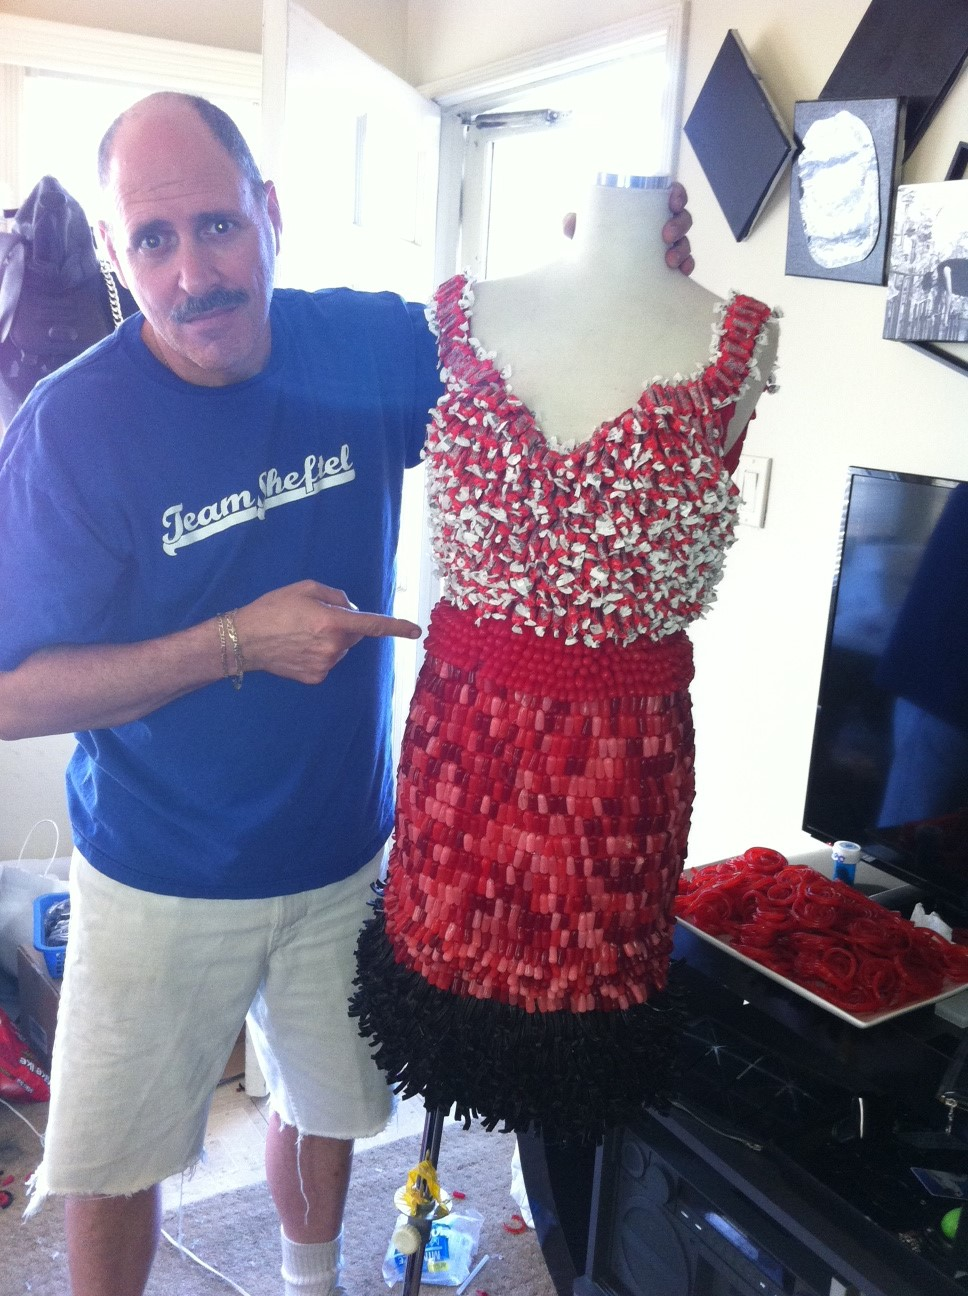 Dress made of 100% candy!